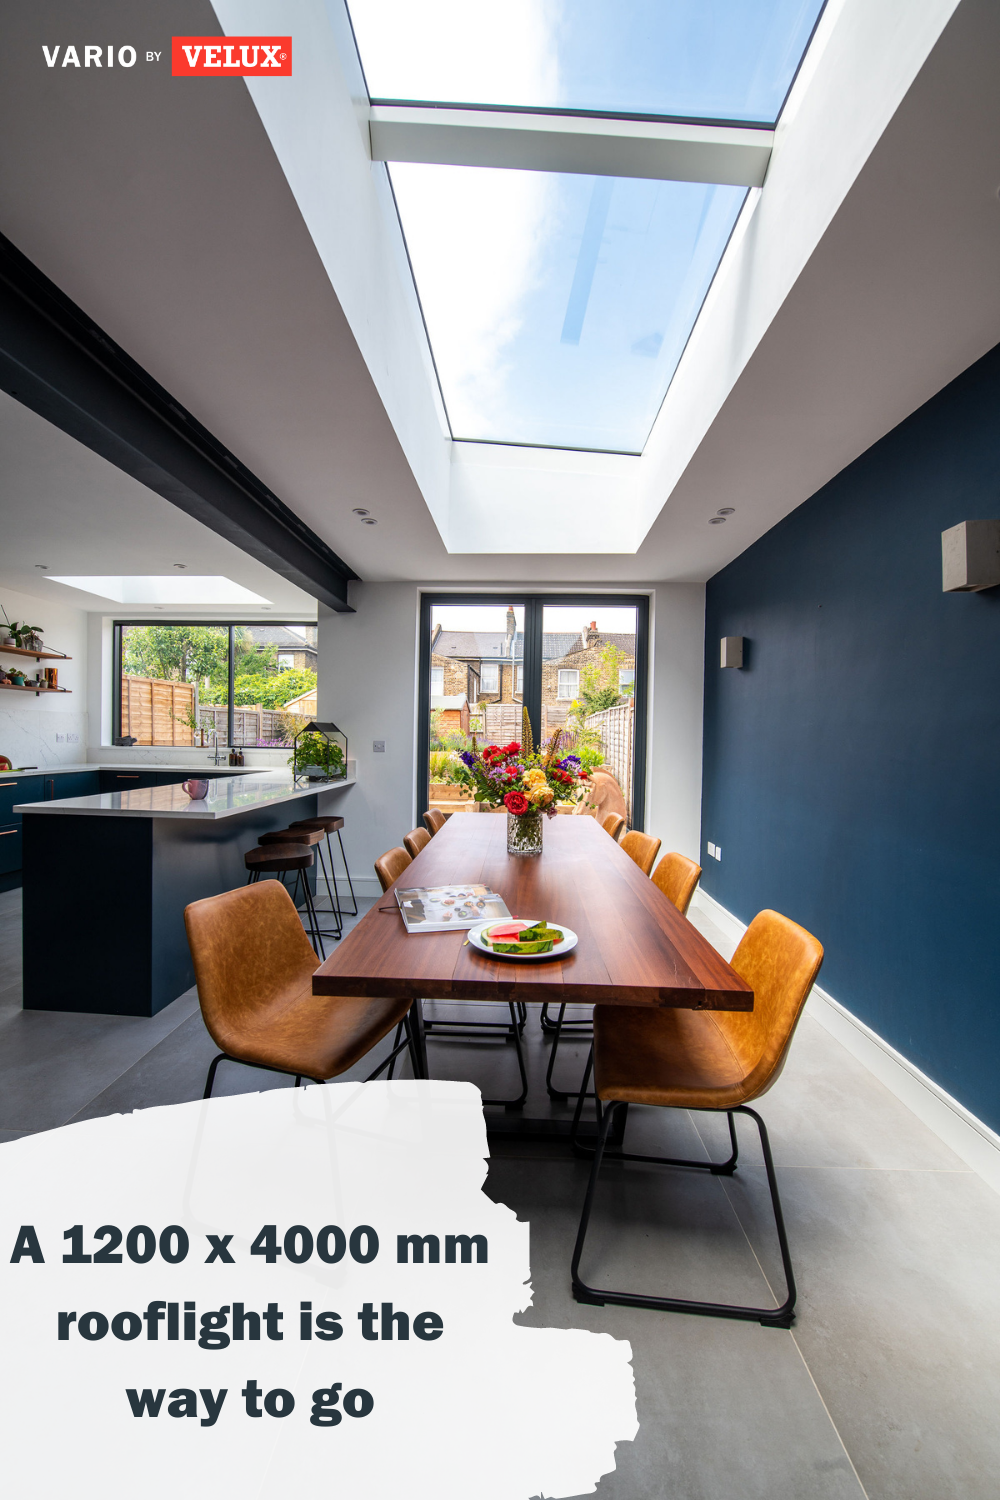 Vario by VELUX bespoke rooflights are customisable by milimeter, so you can achieve your dream extension. In addition to that, we're happy to offer you our installation services and simplify your building process. Download the Vario by VELUX bespoke rooflights pricelist overview and find out more #extensions #houseextension #homeimprovements #skylights #rooflights #daylight #renovation #reno #extensionideas #variobyvelux #velux